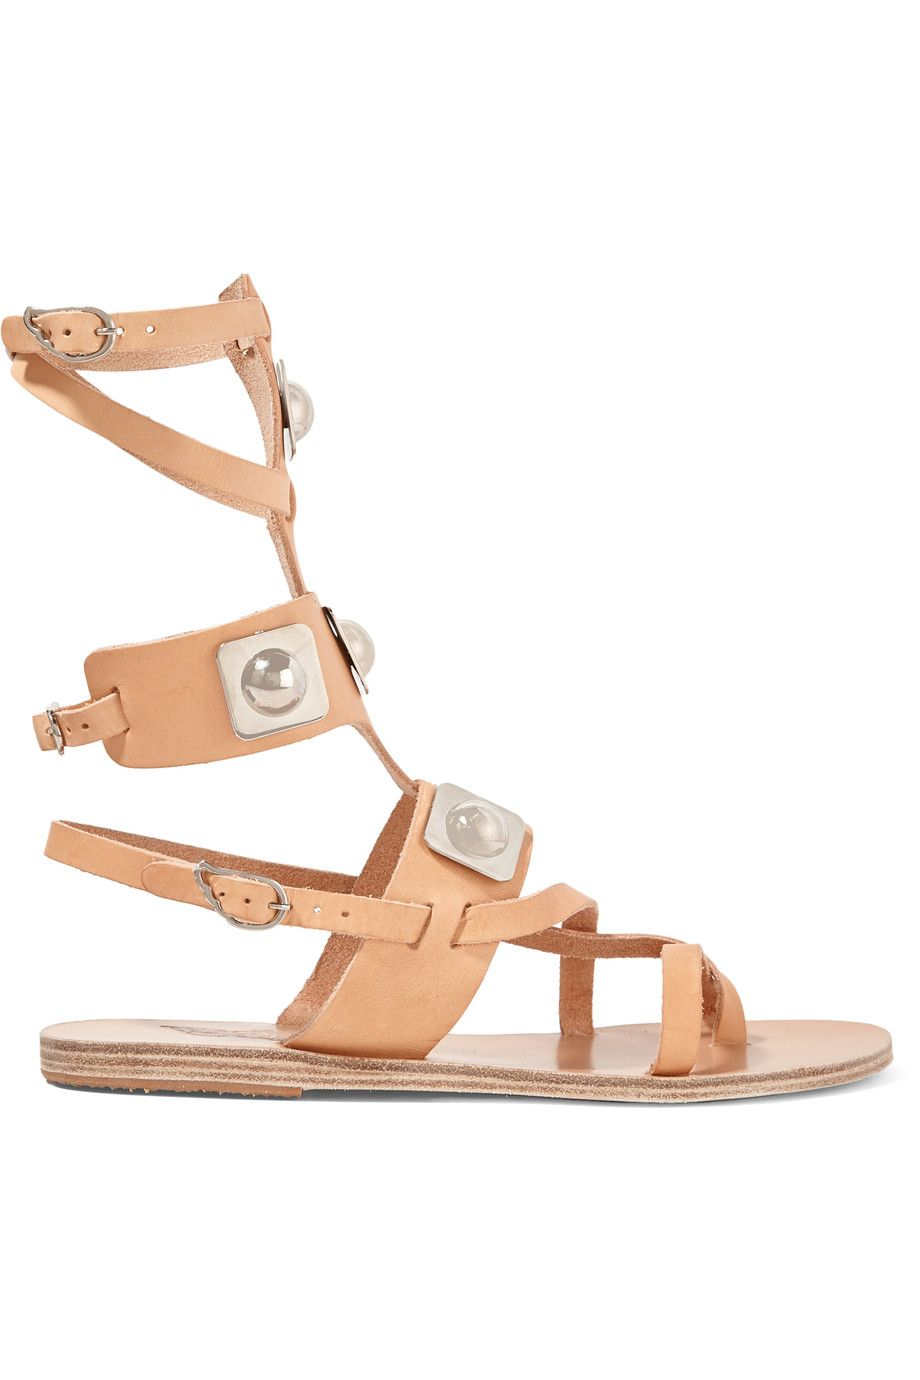 ANCIENT GREEK SANDALS + Peter Pilotto embellished leather gladiator sandals.  #ancientgreeksandals #shoes #